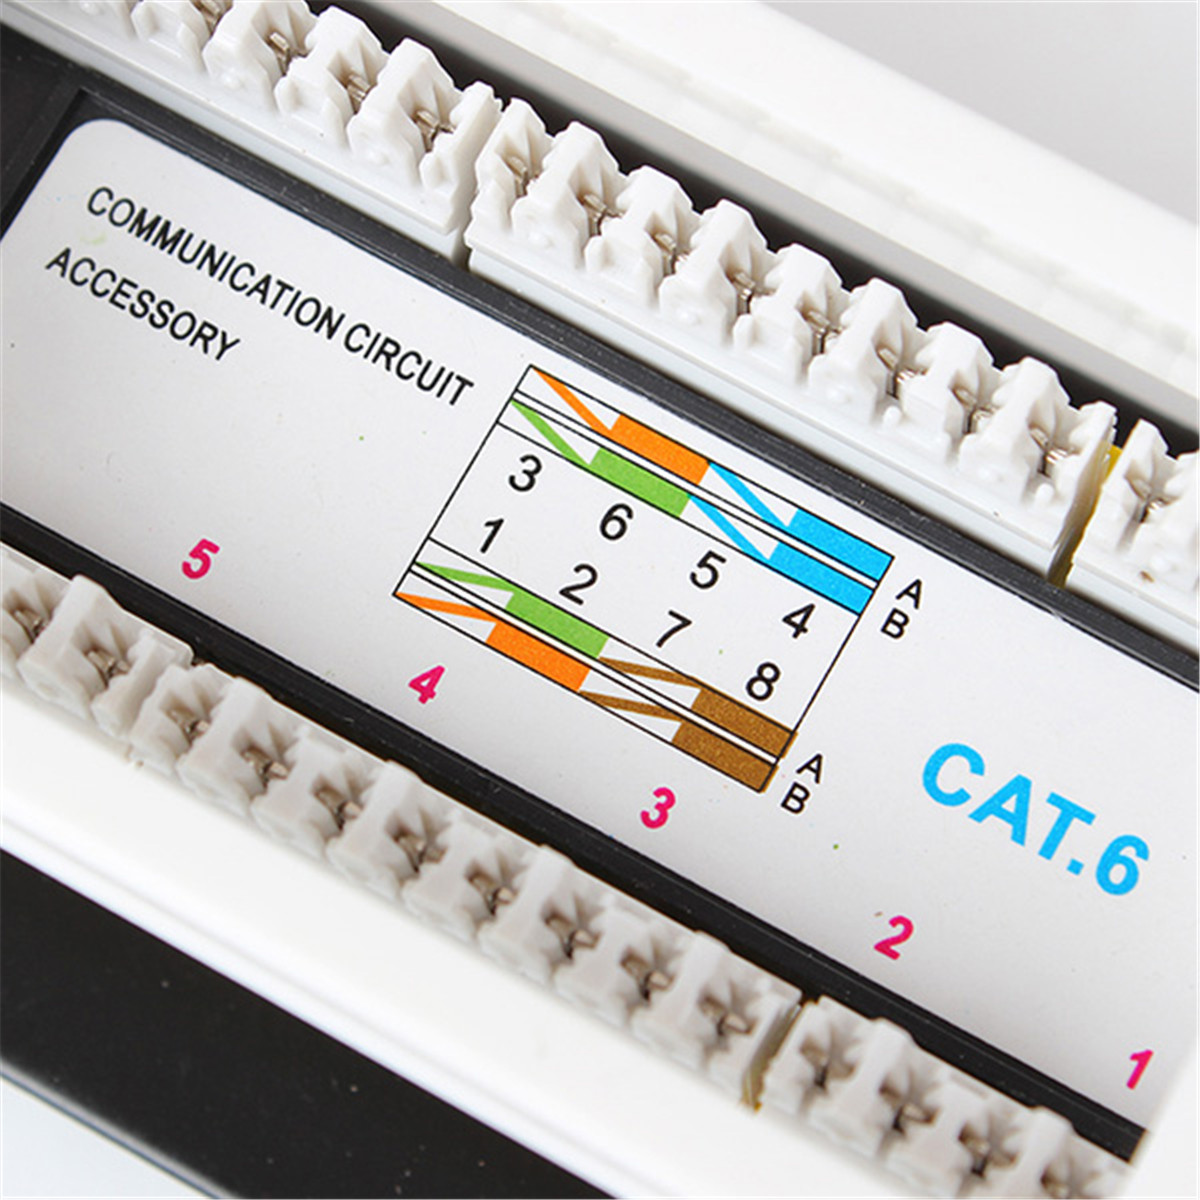 12 Port 10 Inch 110 Network Cat6 Rj45 Wall Surface Mount Patch Panel Wiring Image